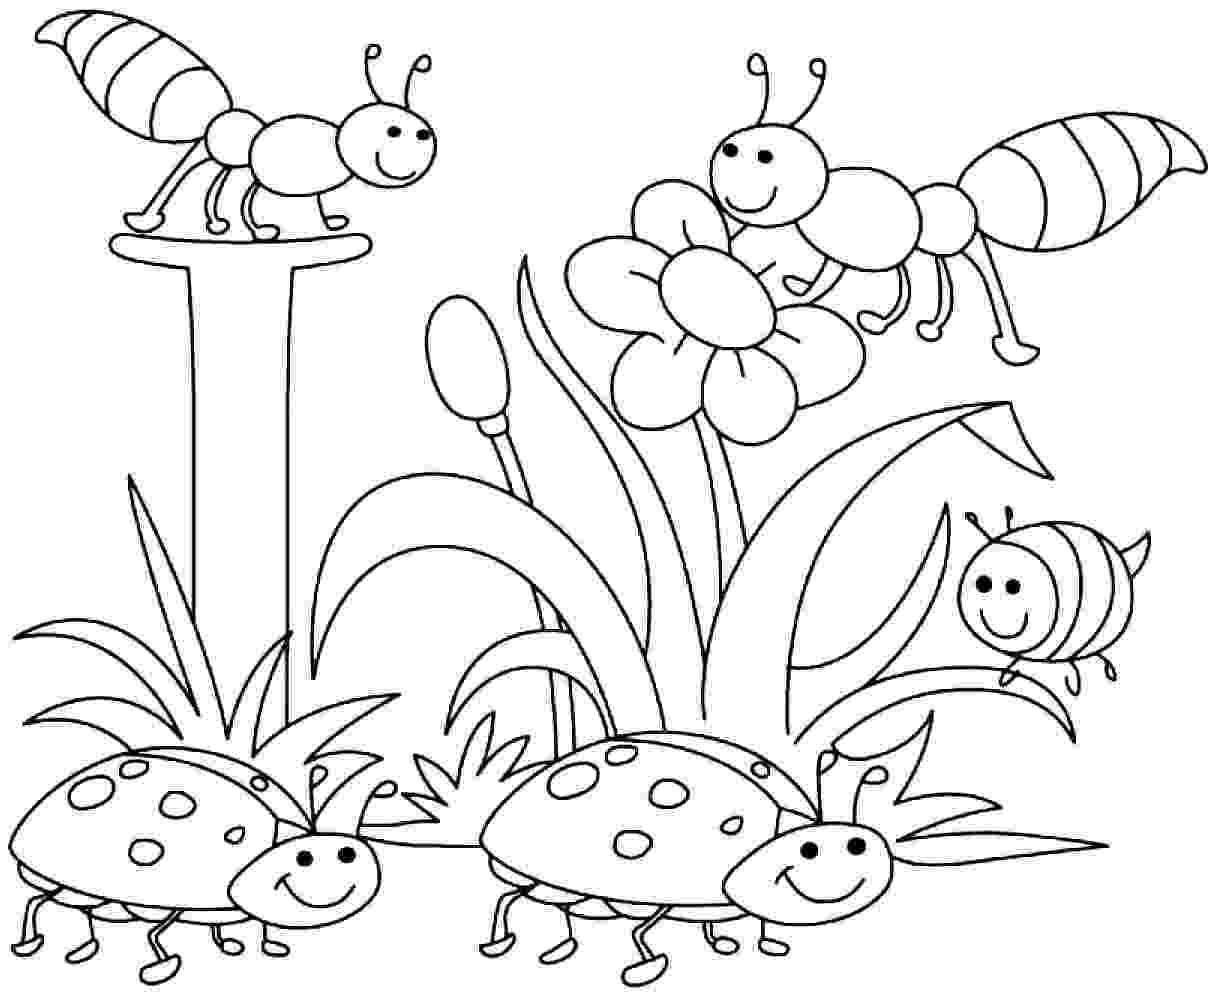 full size coloring pages full size spring coloring sheets pages size coloring full